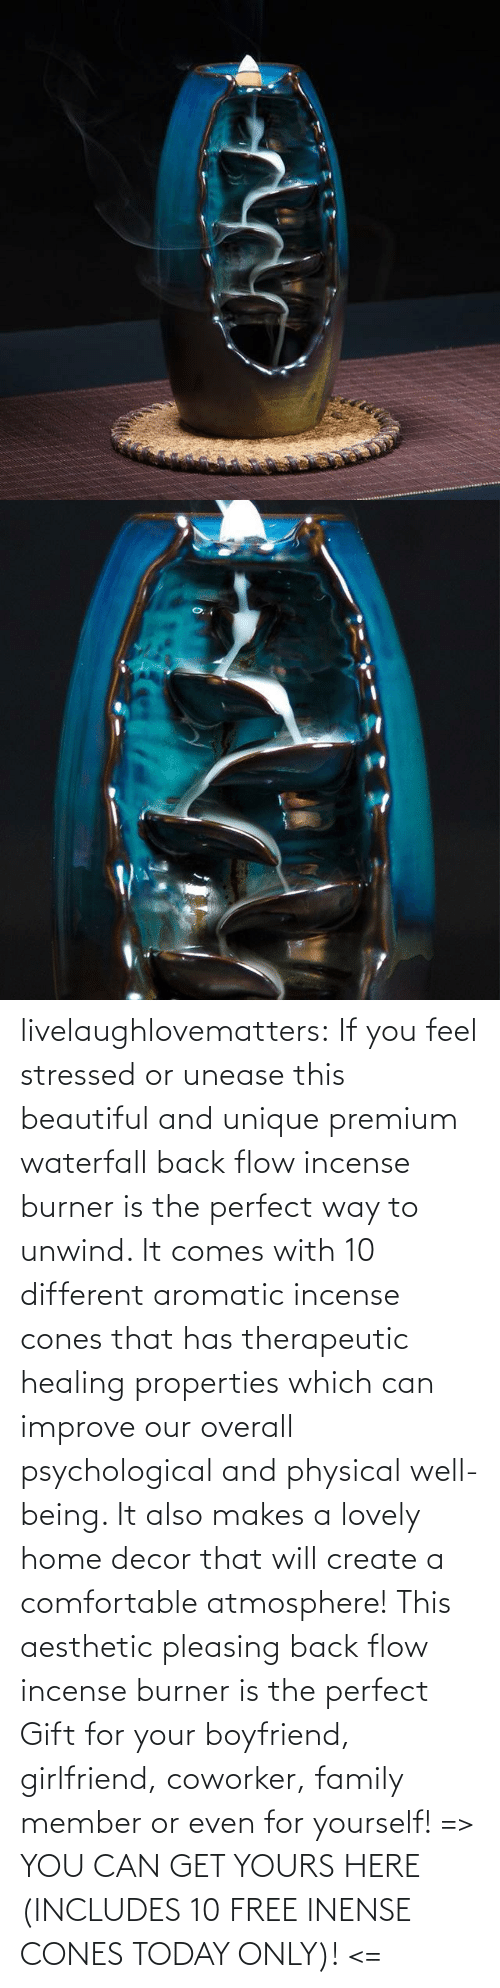 waterfall: livelaughlovematters: If you feel stressed or unease this beautiful and unique premium waterfall back flow incense burner is the perfect way to unwind. It comes with 10 different aromatic incense cones that has therapeutic healing properties which can improve our overall psychological and physical well-being. It also makes a lovely home decor that will create a comfortable atmosphere! This aesthetic pleasing back flow incense burner is the perfect Gift for your boyfriend, girlfriend, coworker, family member or even for yourself! => YOU CAN GET YOURS HERE (INCLUDES 10 FREE INENSE CONES TODAY ONLY)! <=